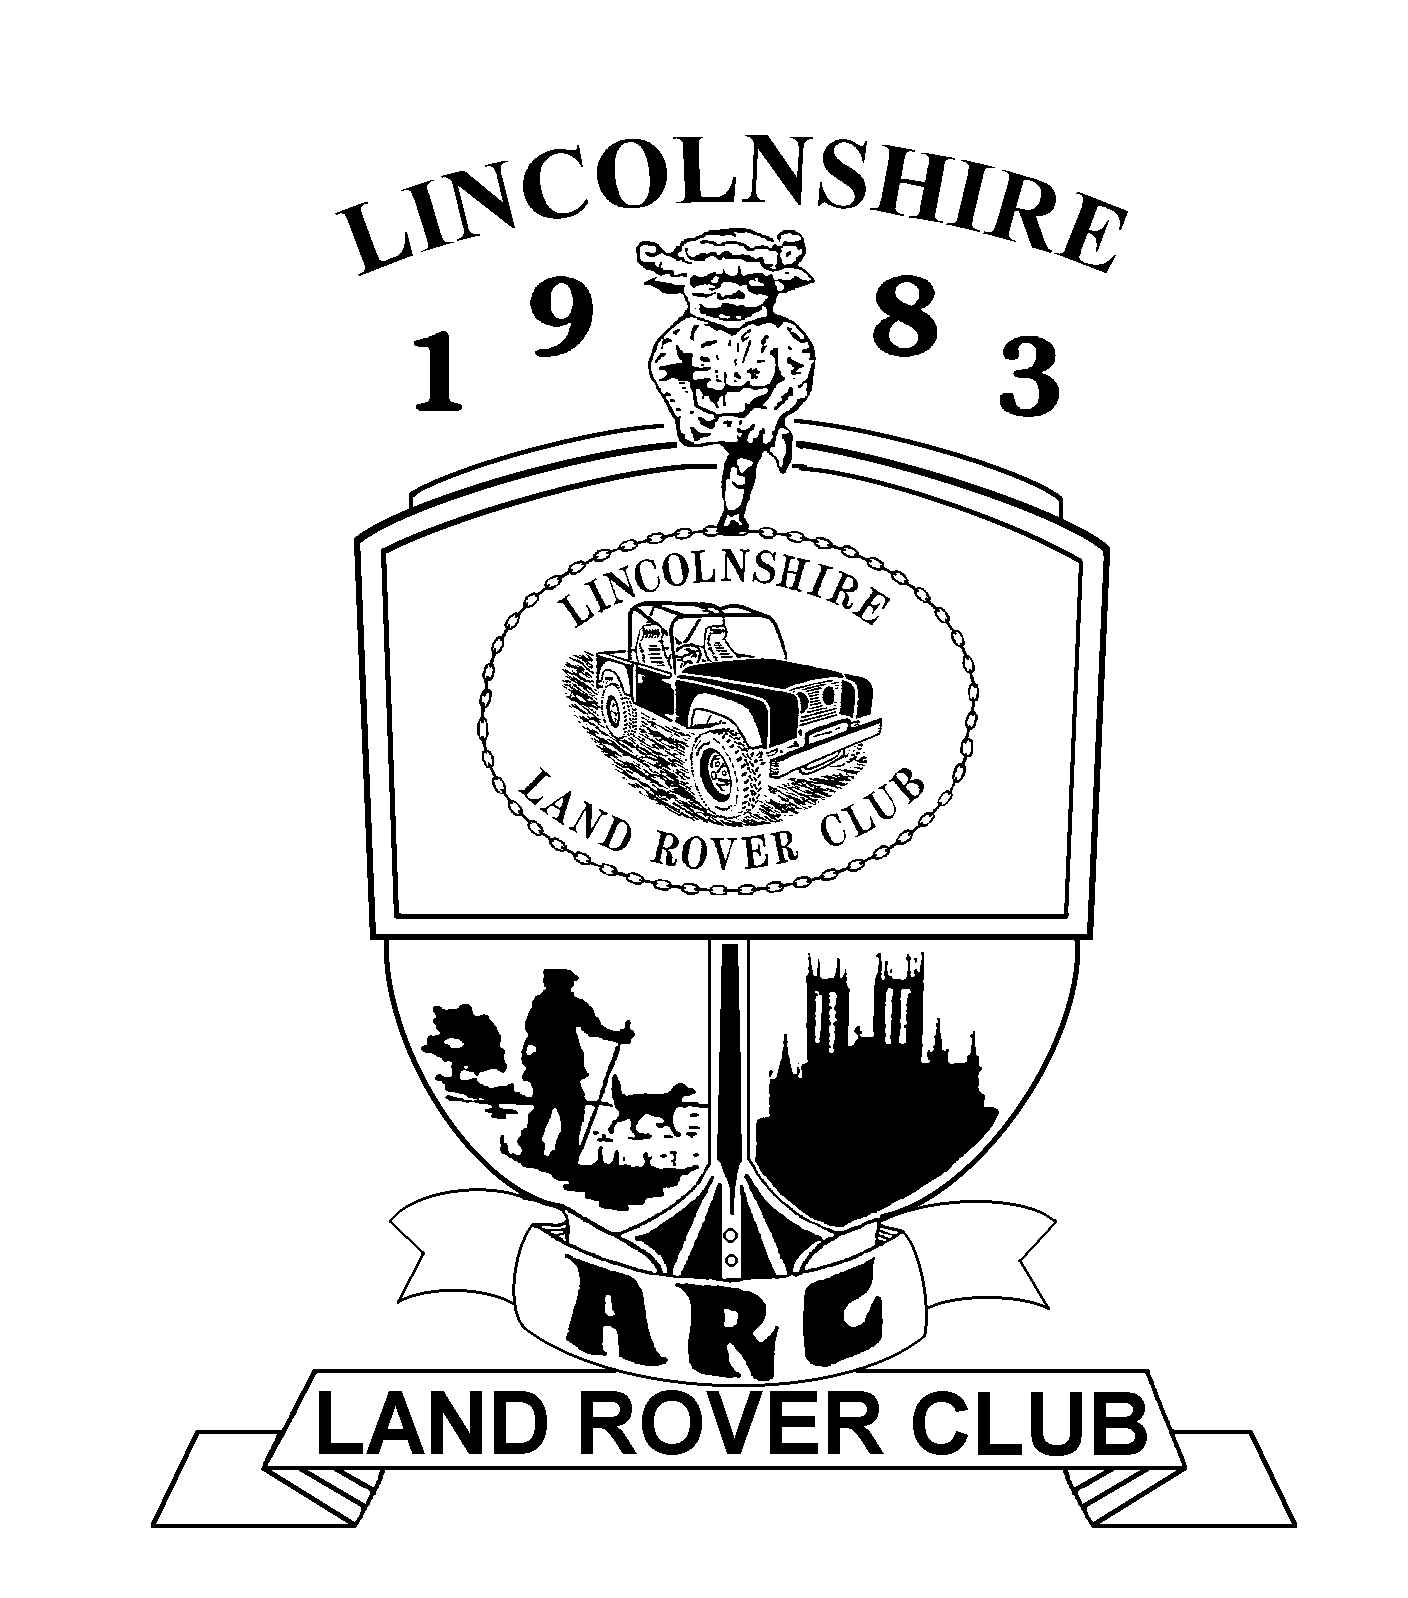 LINCOLNSHIRE LAND ROVER CLUB LIMITED(THE)